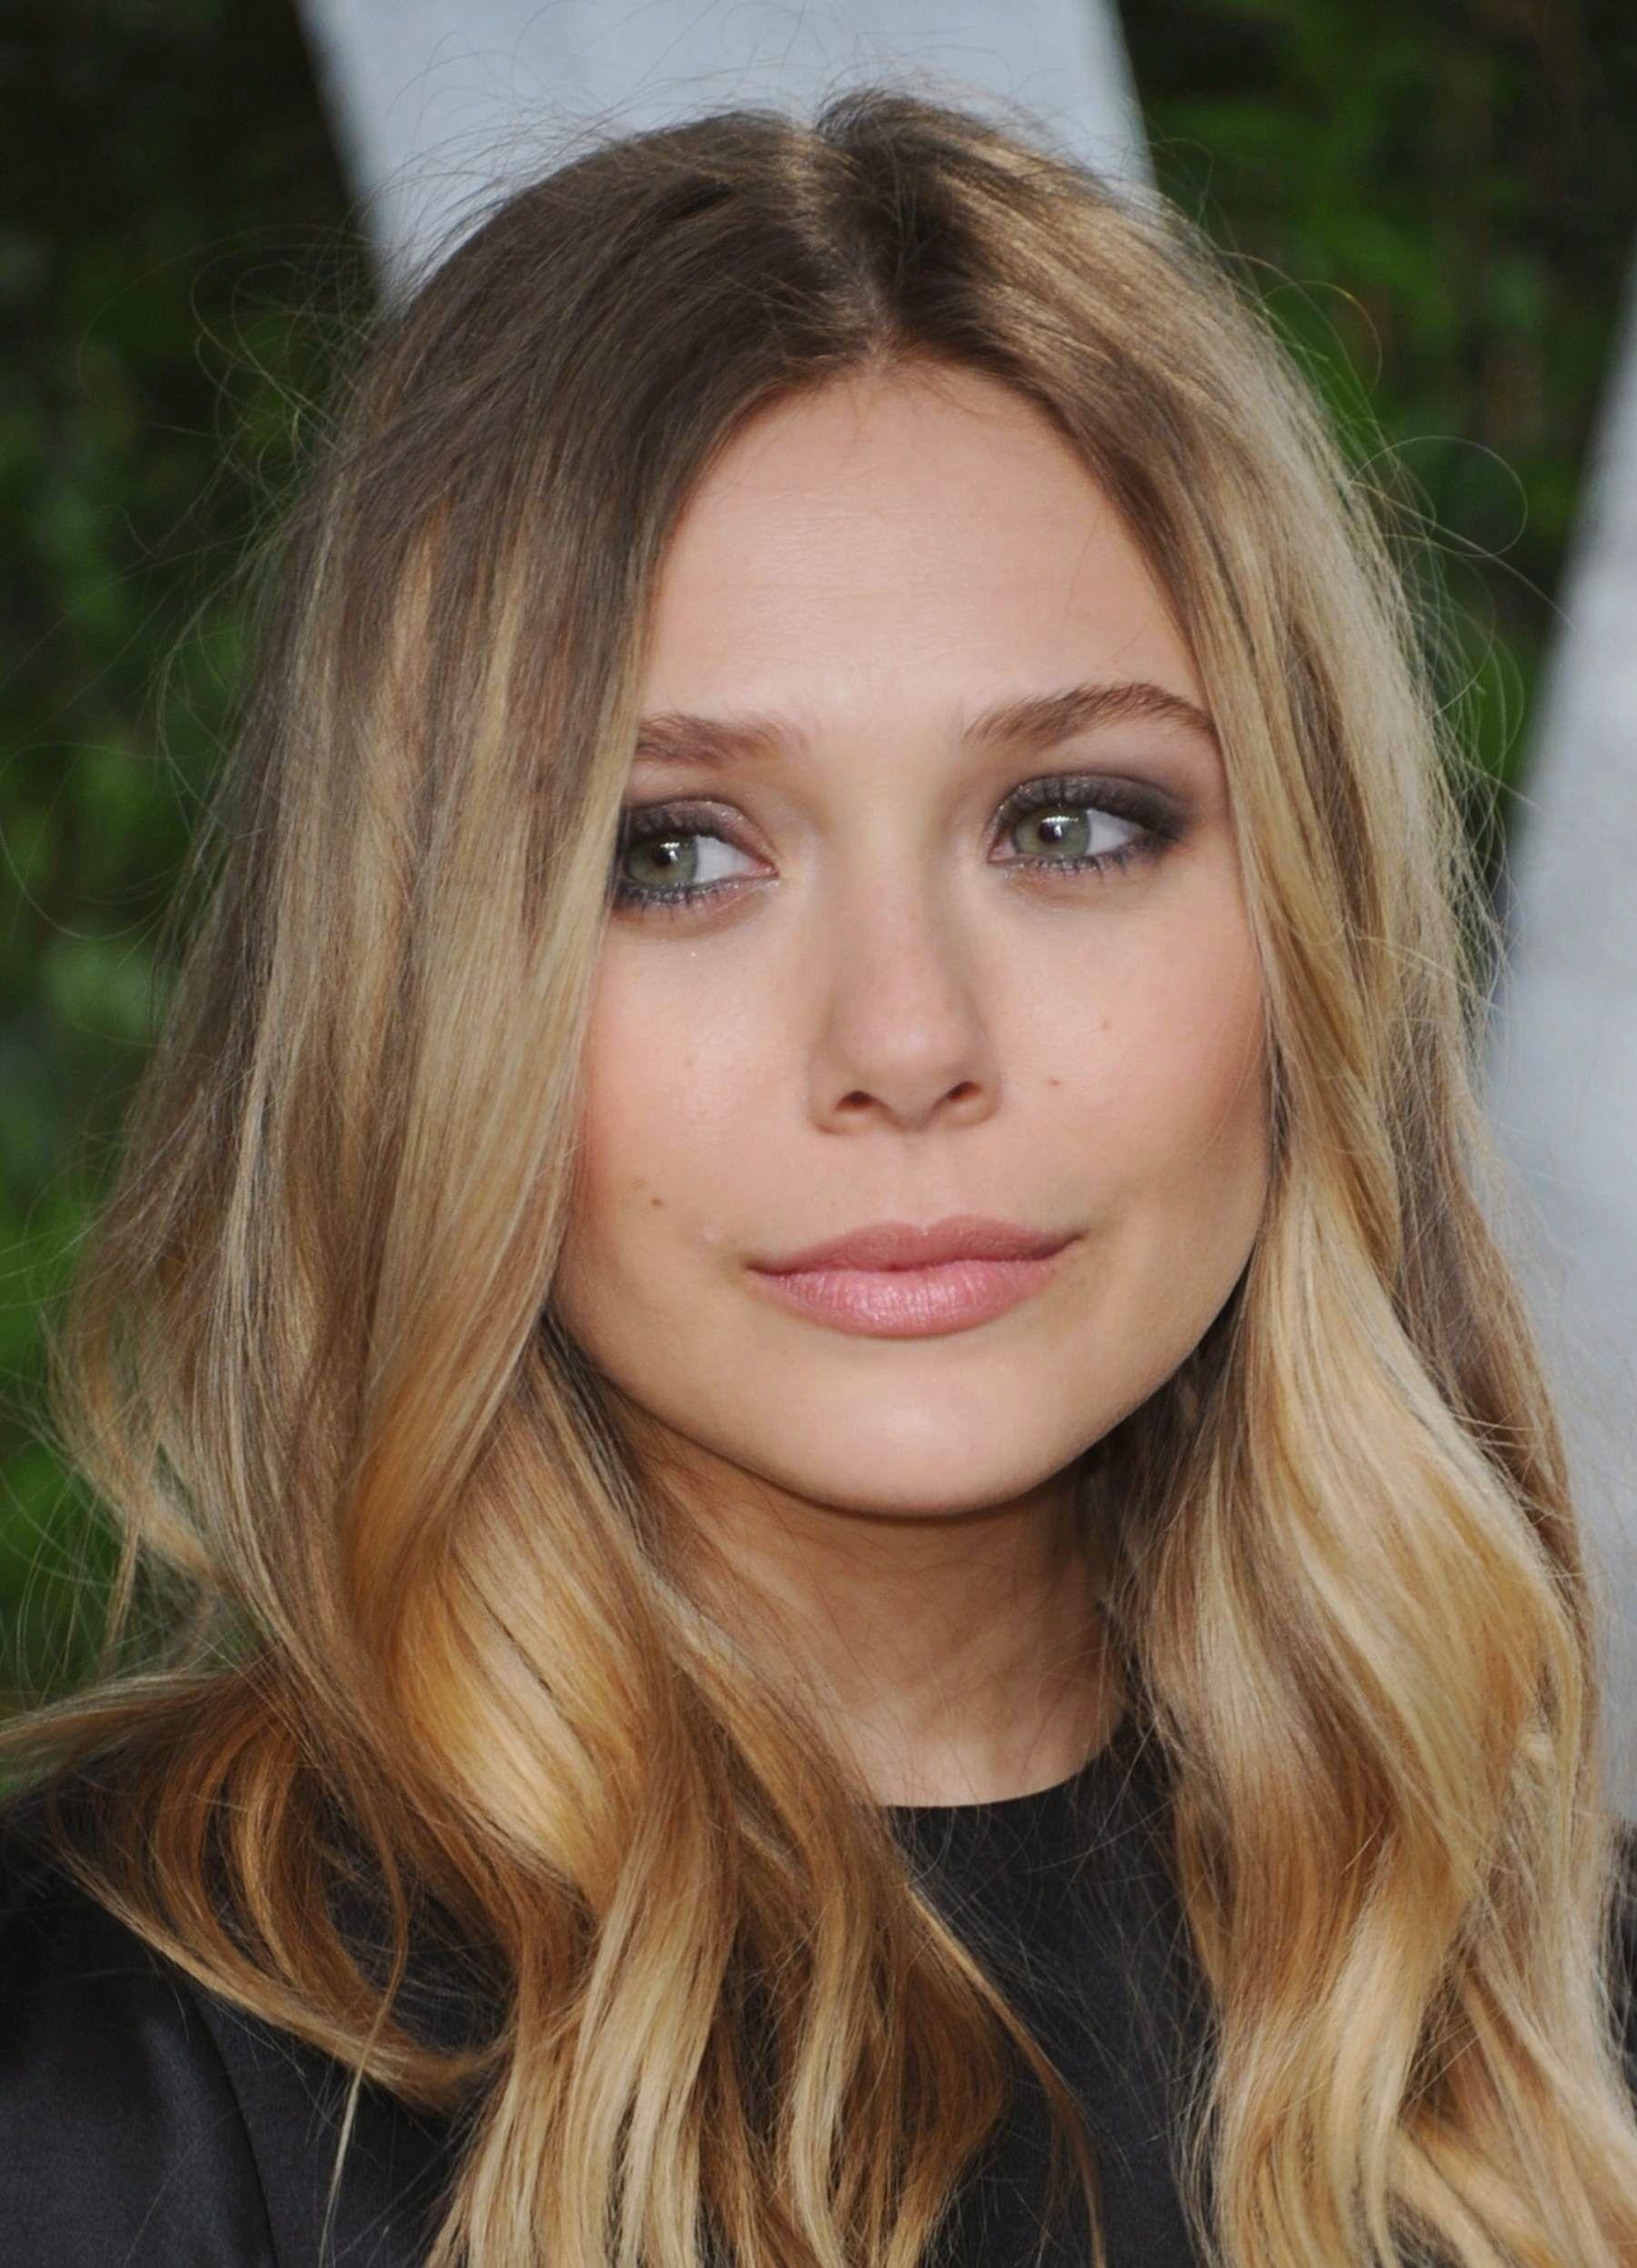 Elizabeth Olsen Wallpapers HD Download